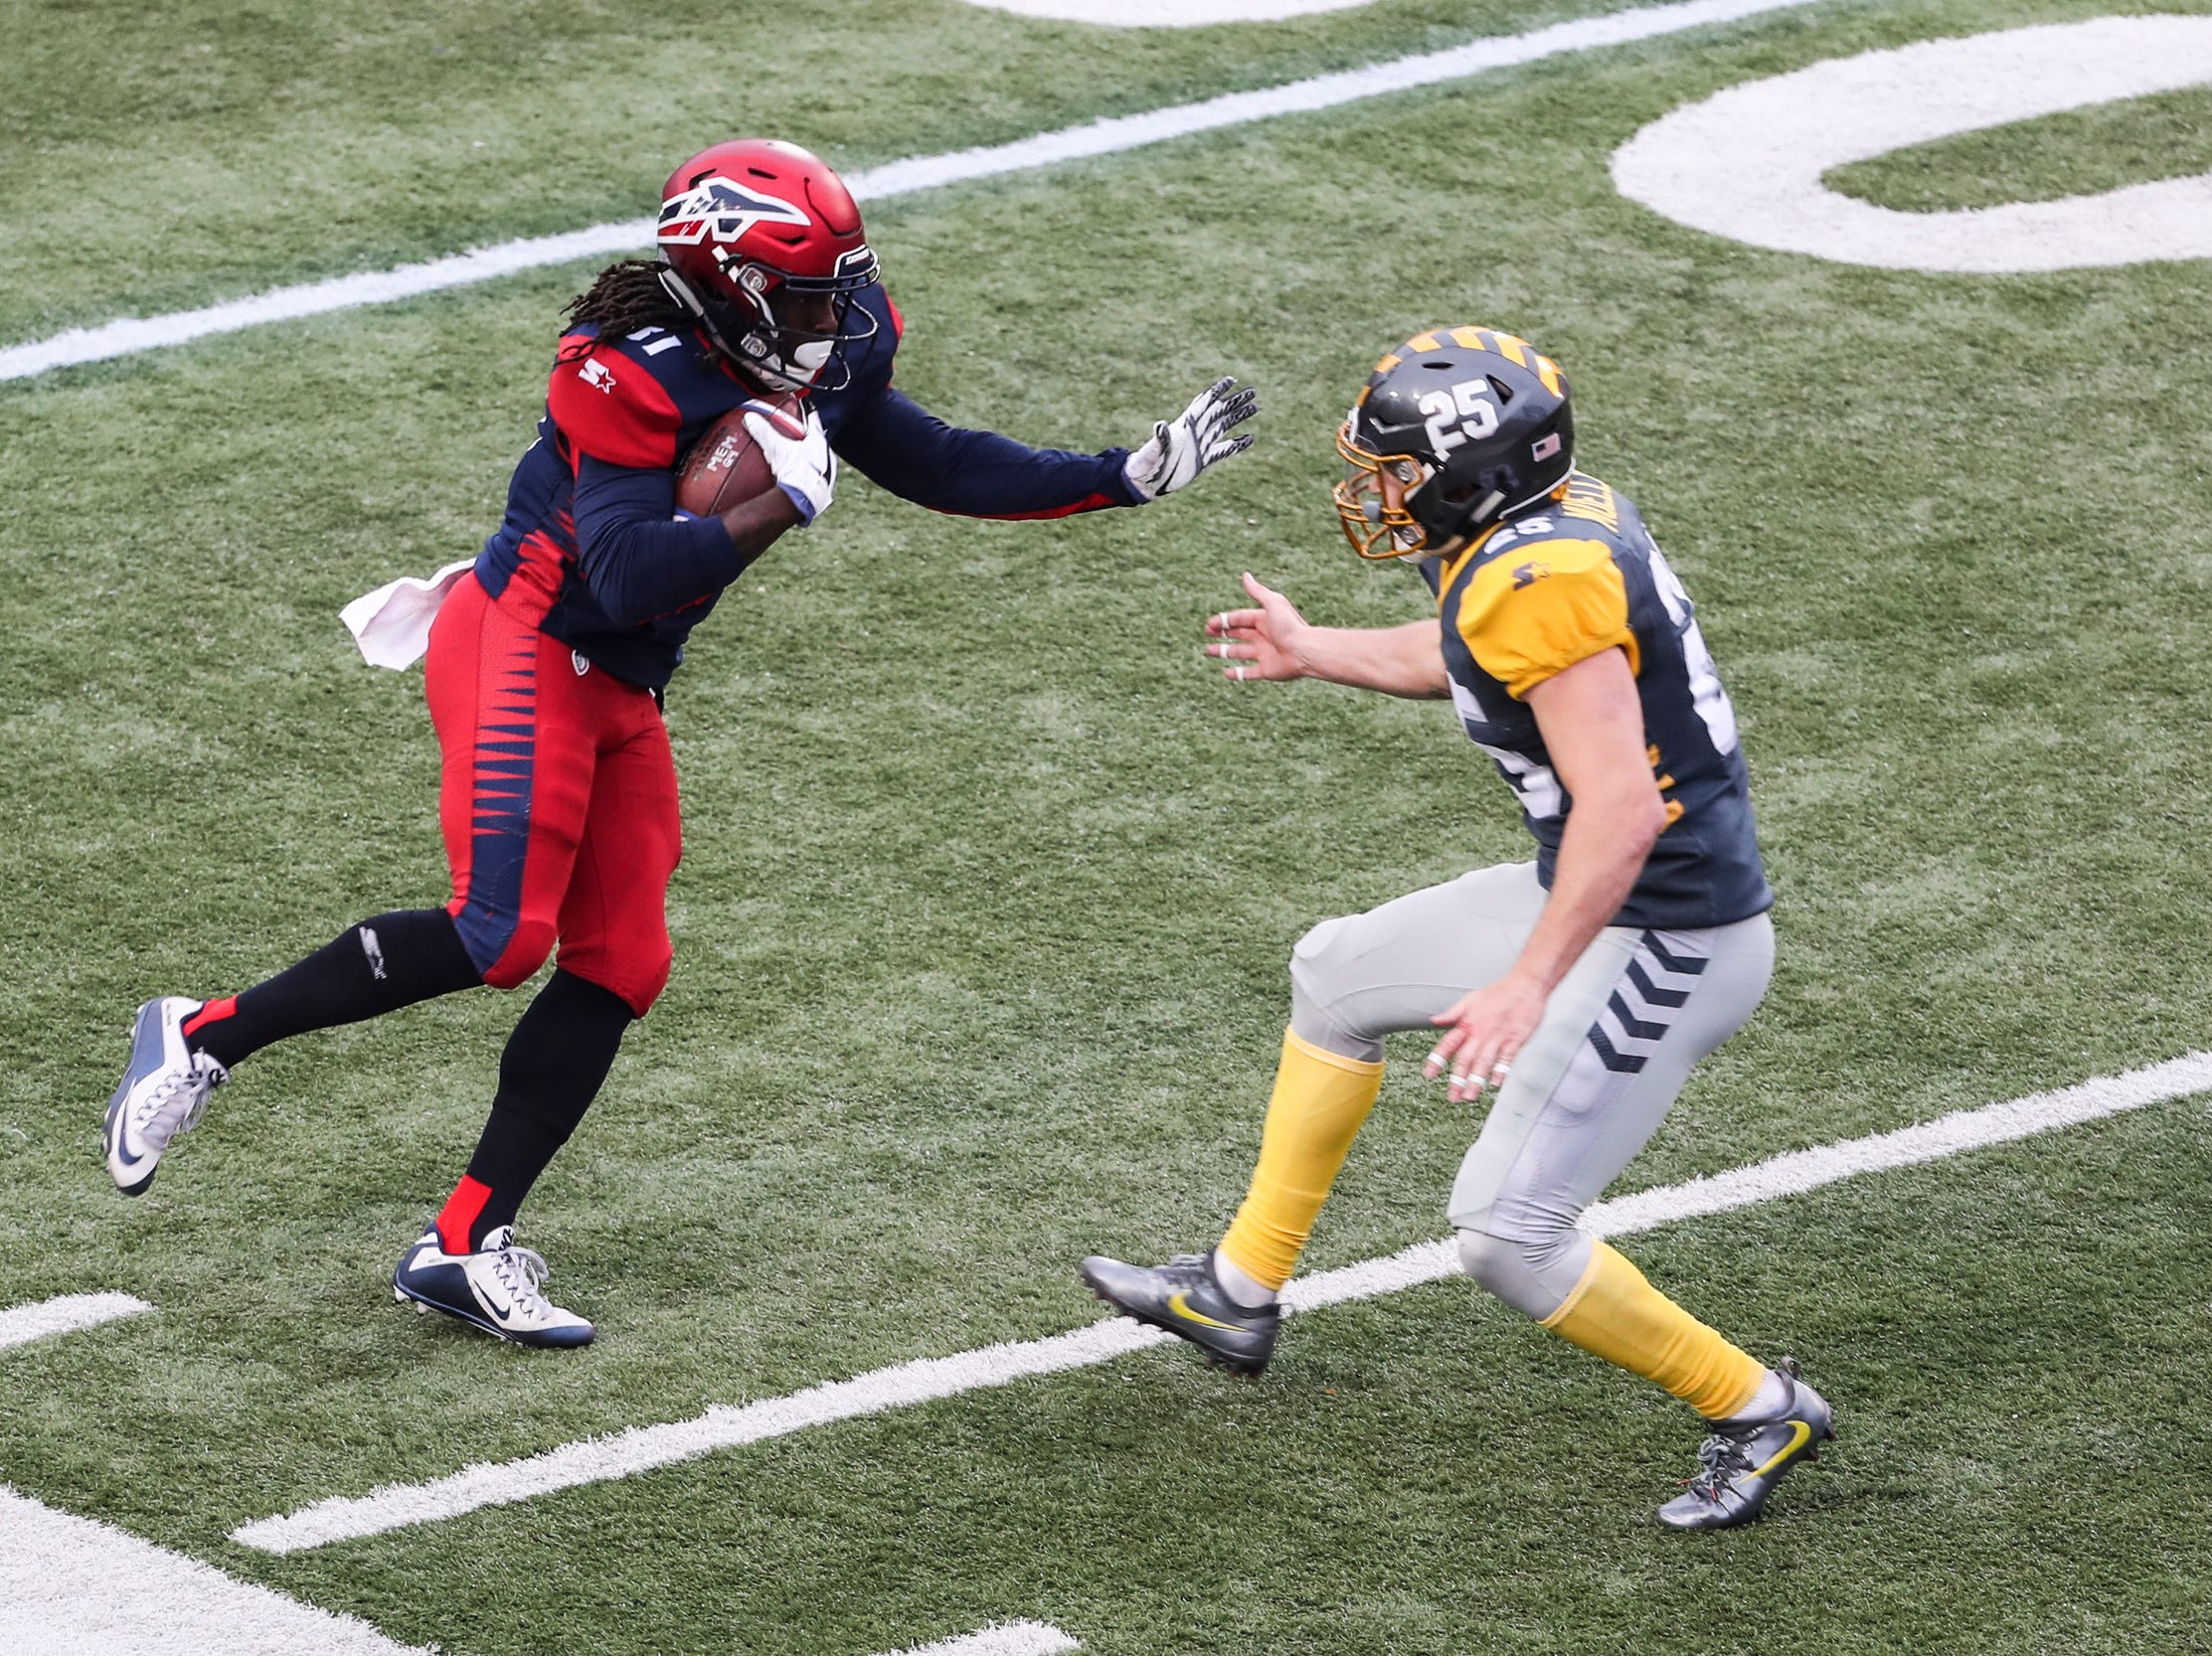 """March 02, 2019 - Memphis Express' Alton """"Pig"""" Howard runs with the ball during Saturday's game against the San Diego Fleet."""